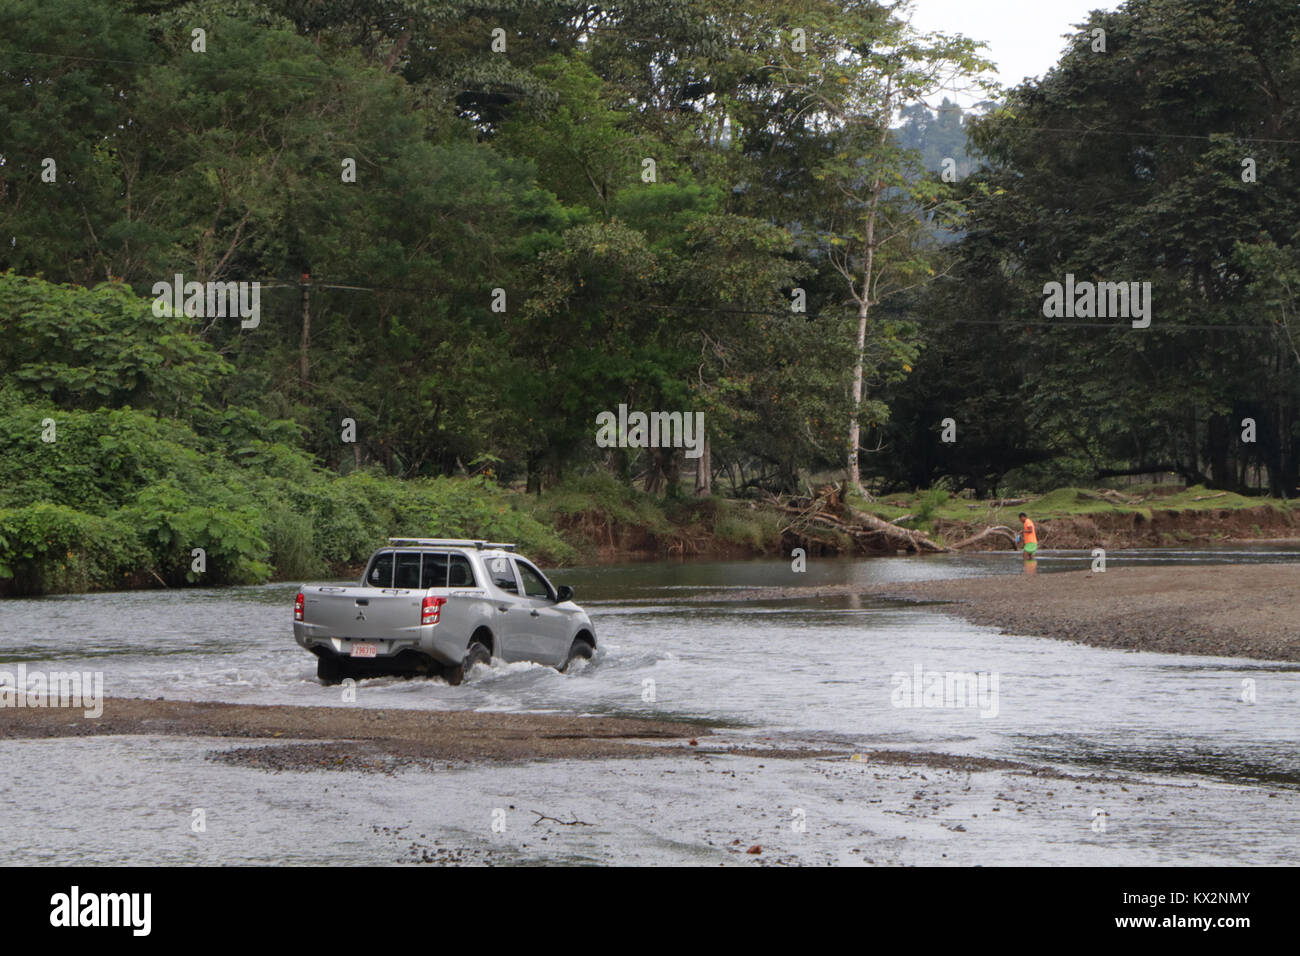 Car crossing river near Drake Bay Costa Rica Osa PeninsulaStock Photo